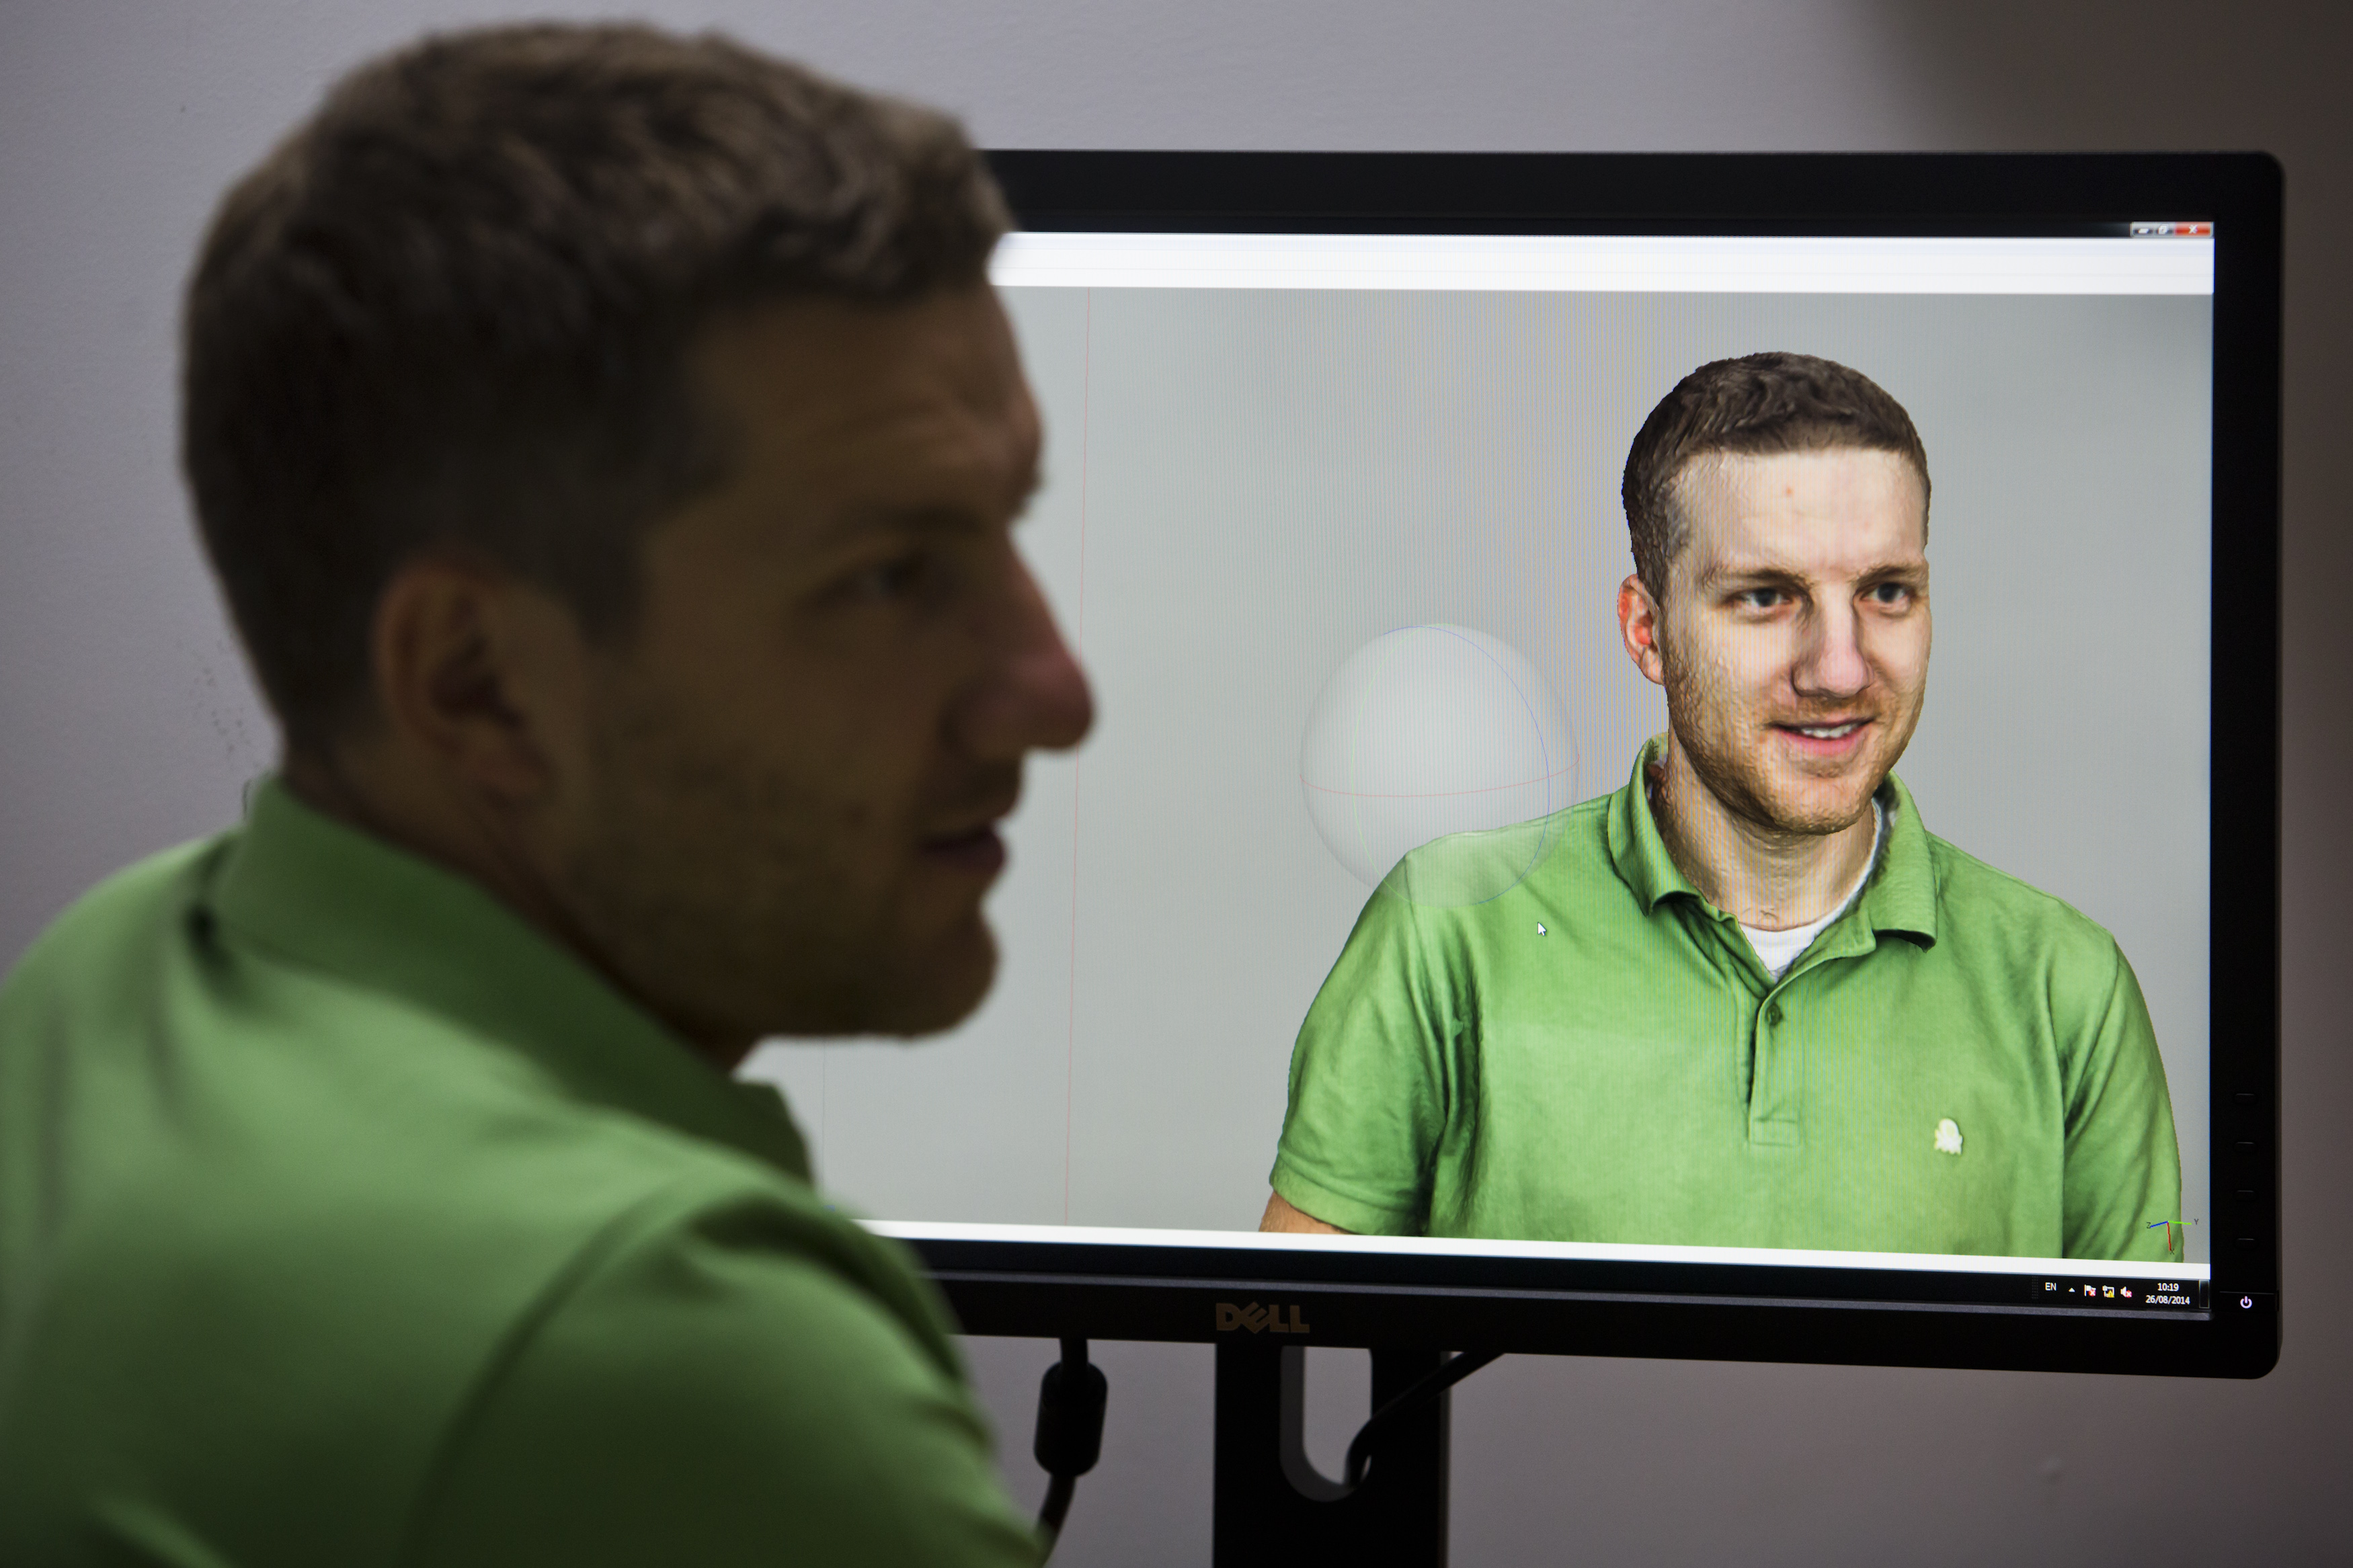 Martin Benes works with a 3D model of himself on the computer on August 26, 2014 in Prague, Czech Republic.